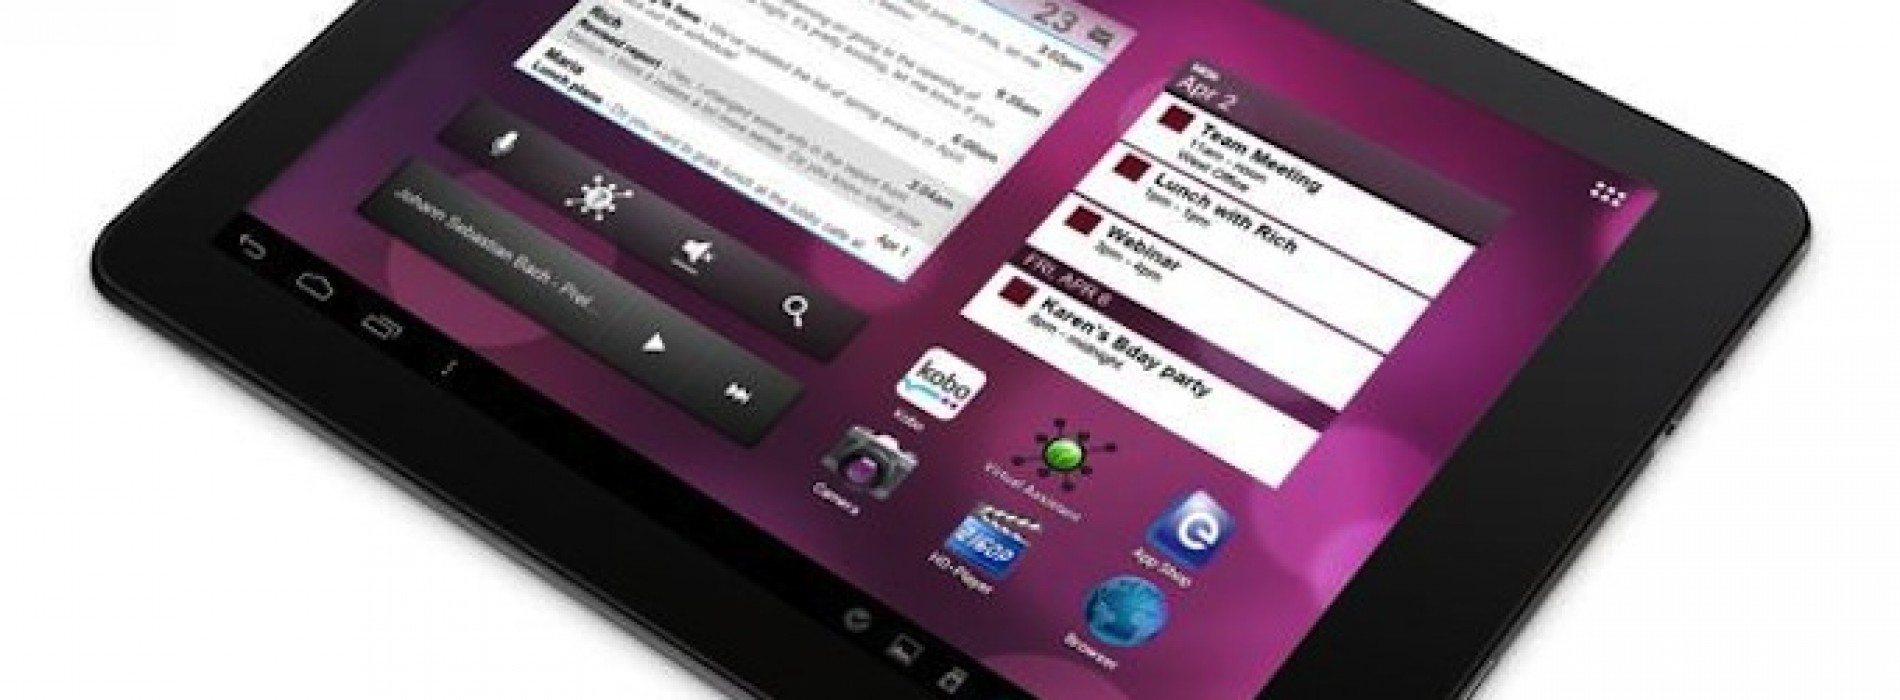 eGlide Pro X tablet announced by Ematic: ICS tablet for just $219